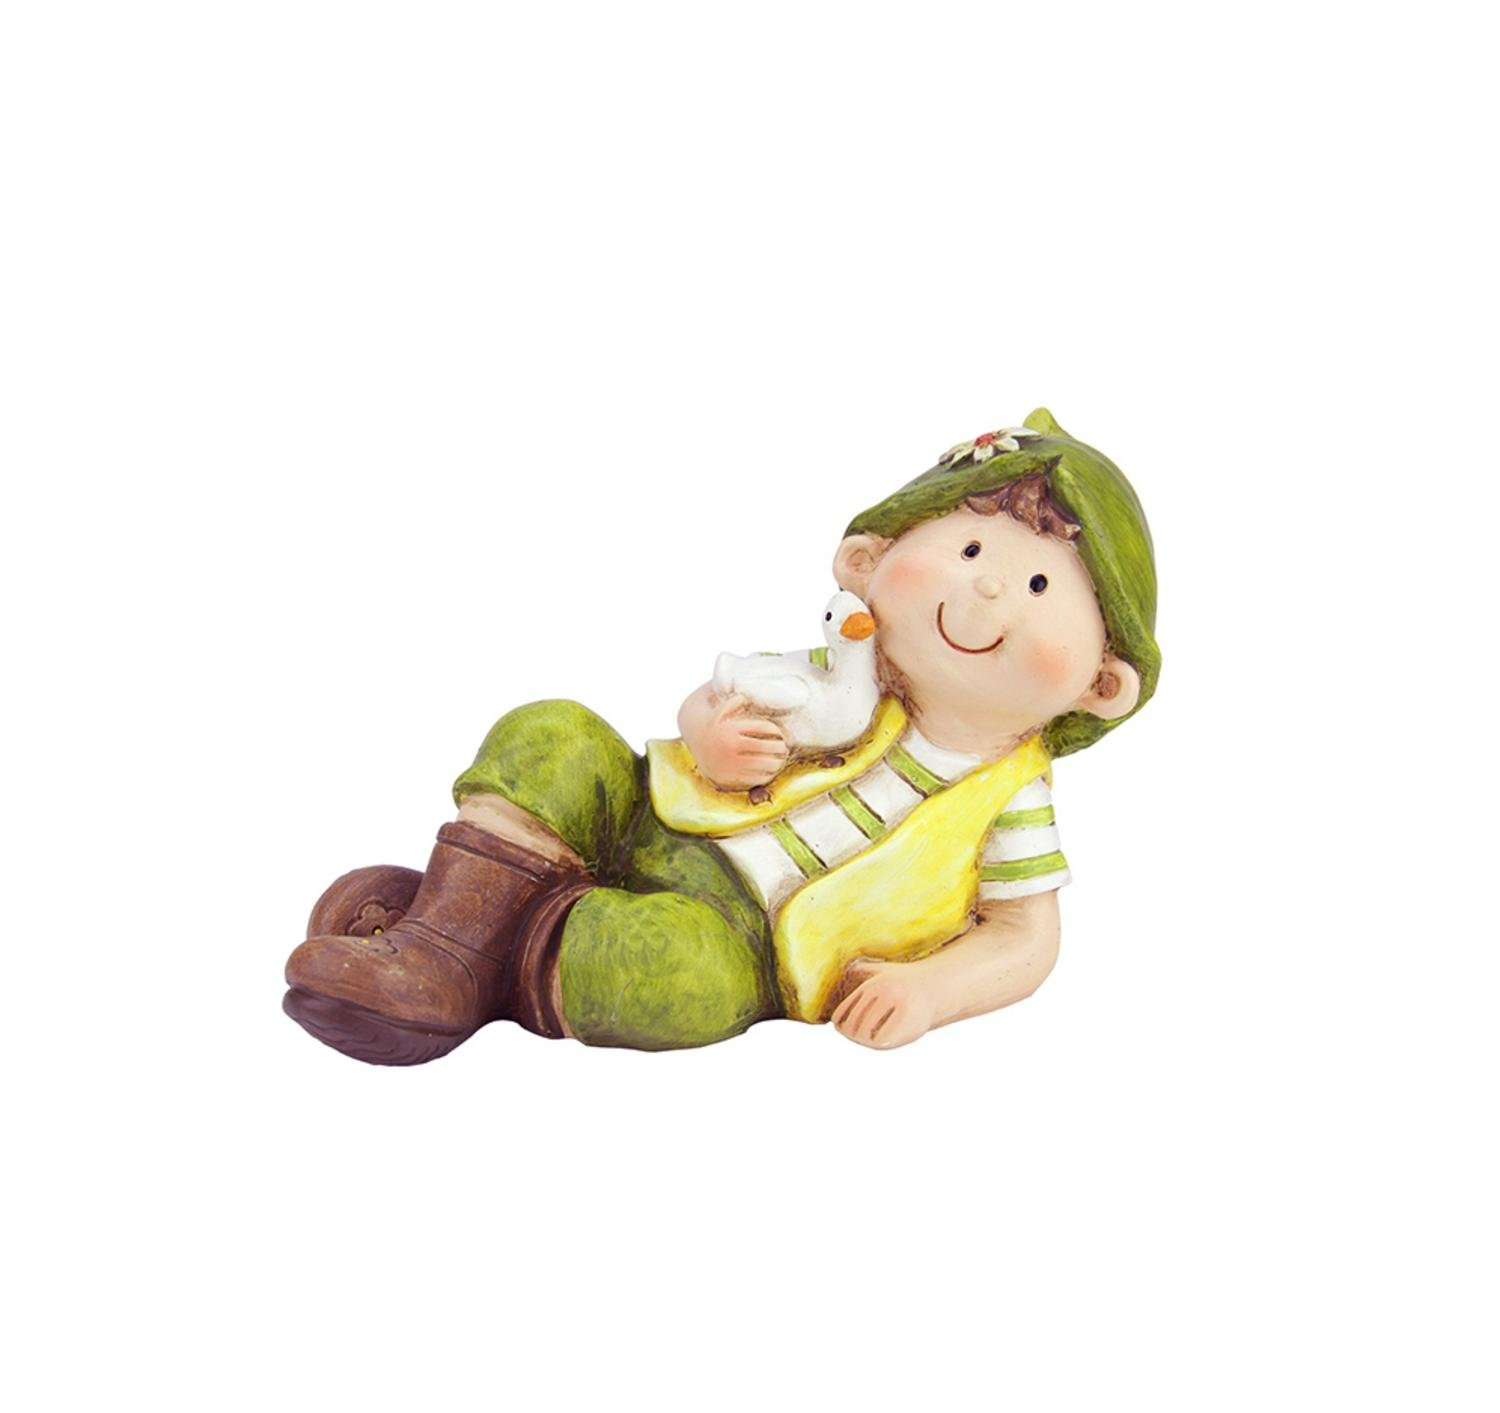 Northlight QQ76237 A Young Boy Gnome Laying with Duck Spring Outdoor Garden Patio Figure Statuary and Fountains, 7.5'', Green